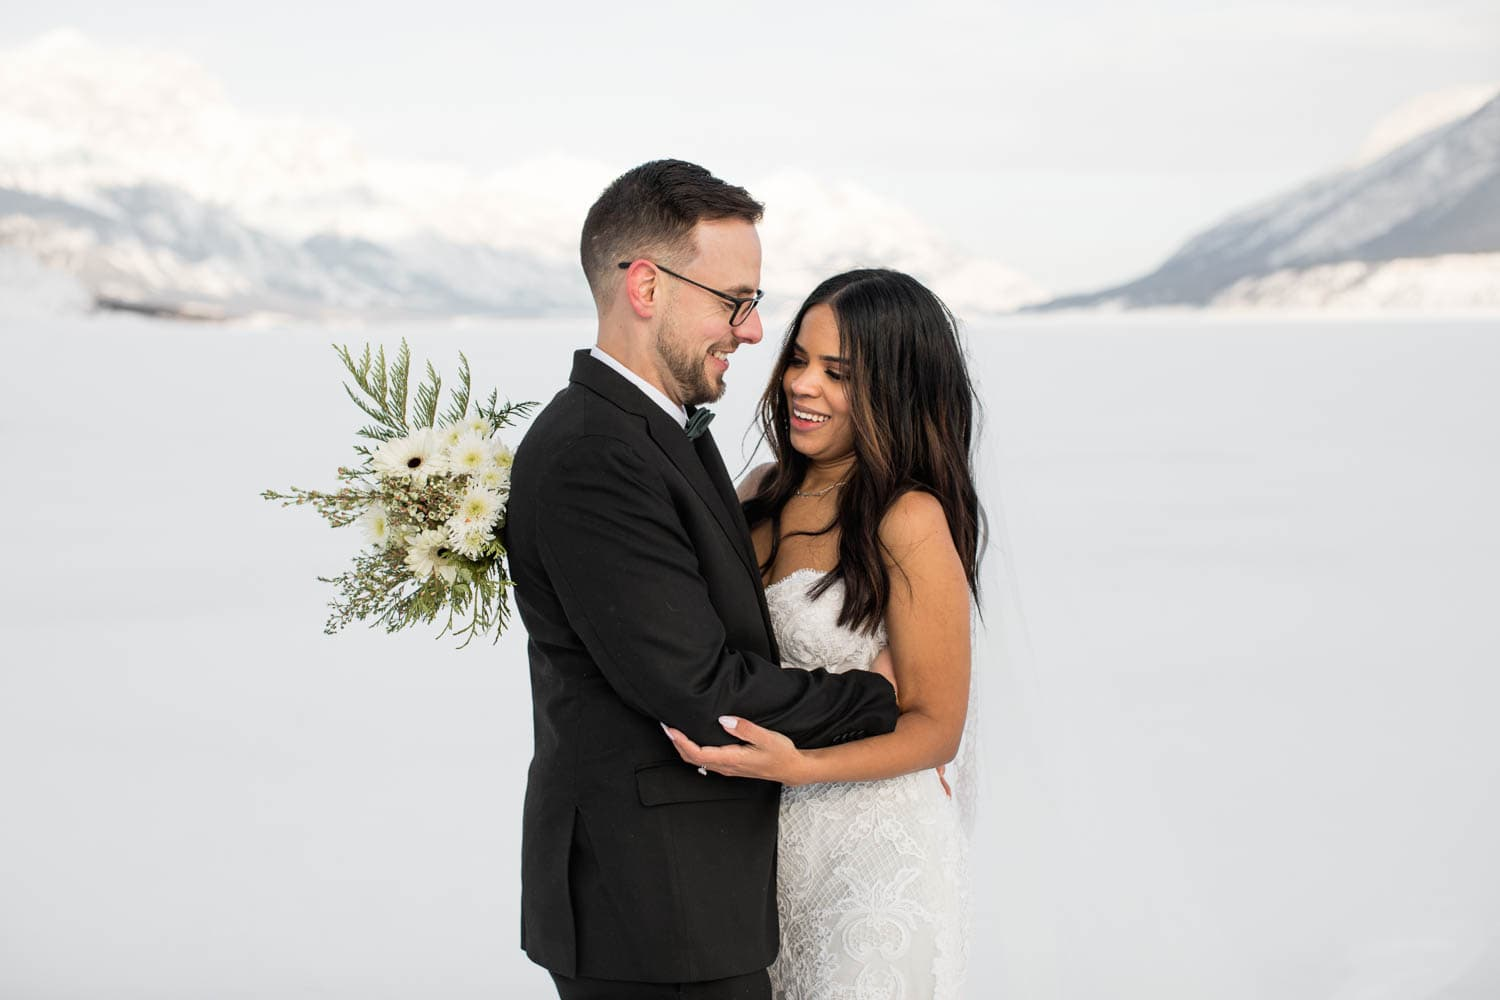 Abraham Lake Winter Elopement